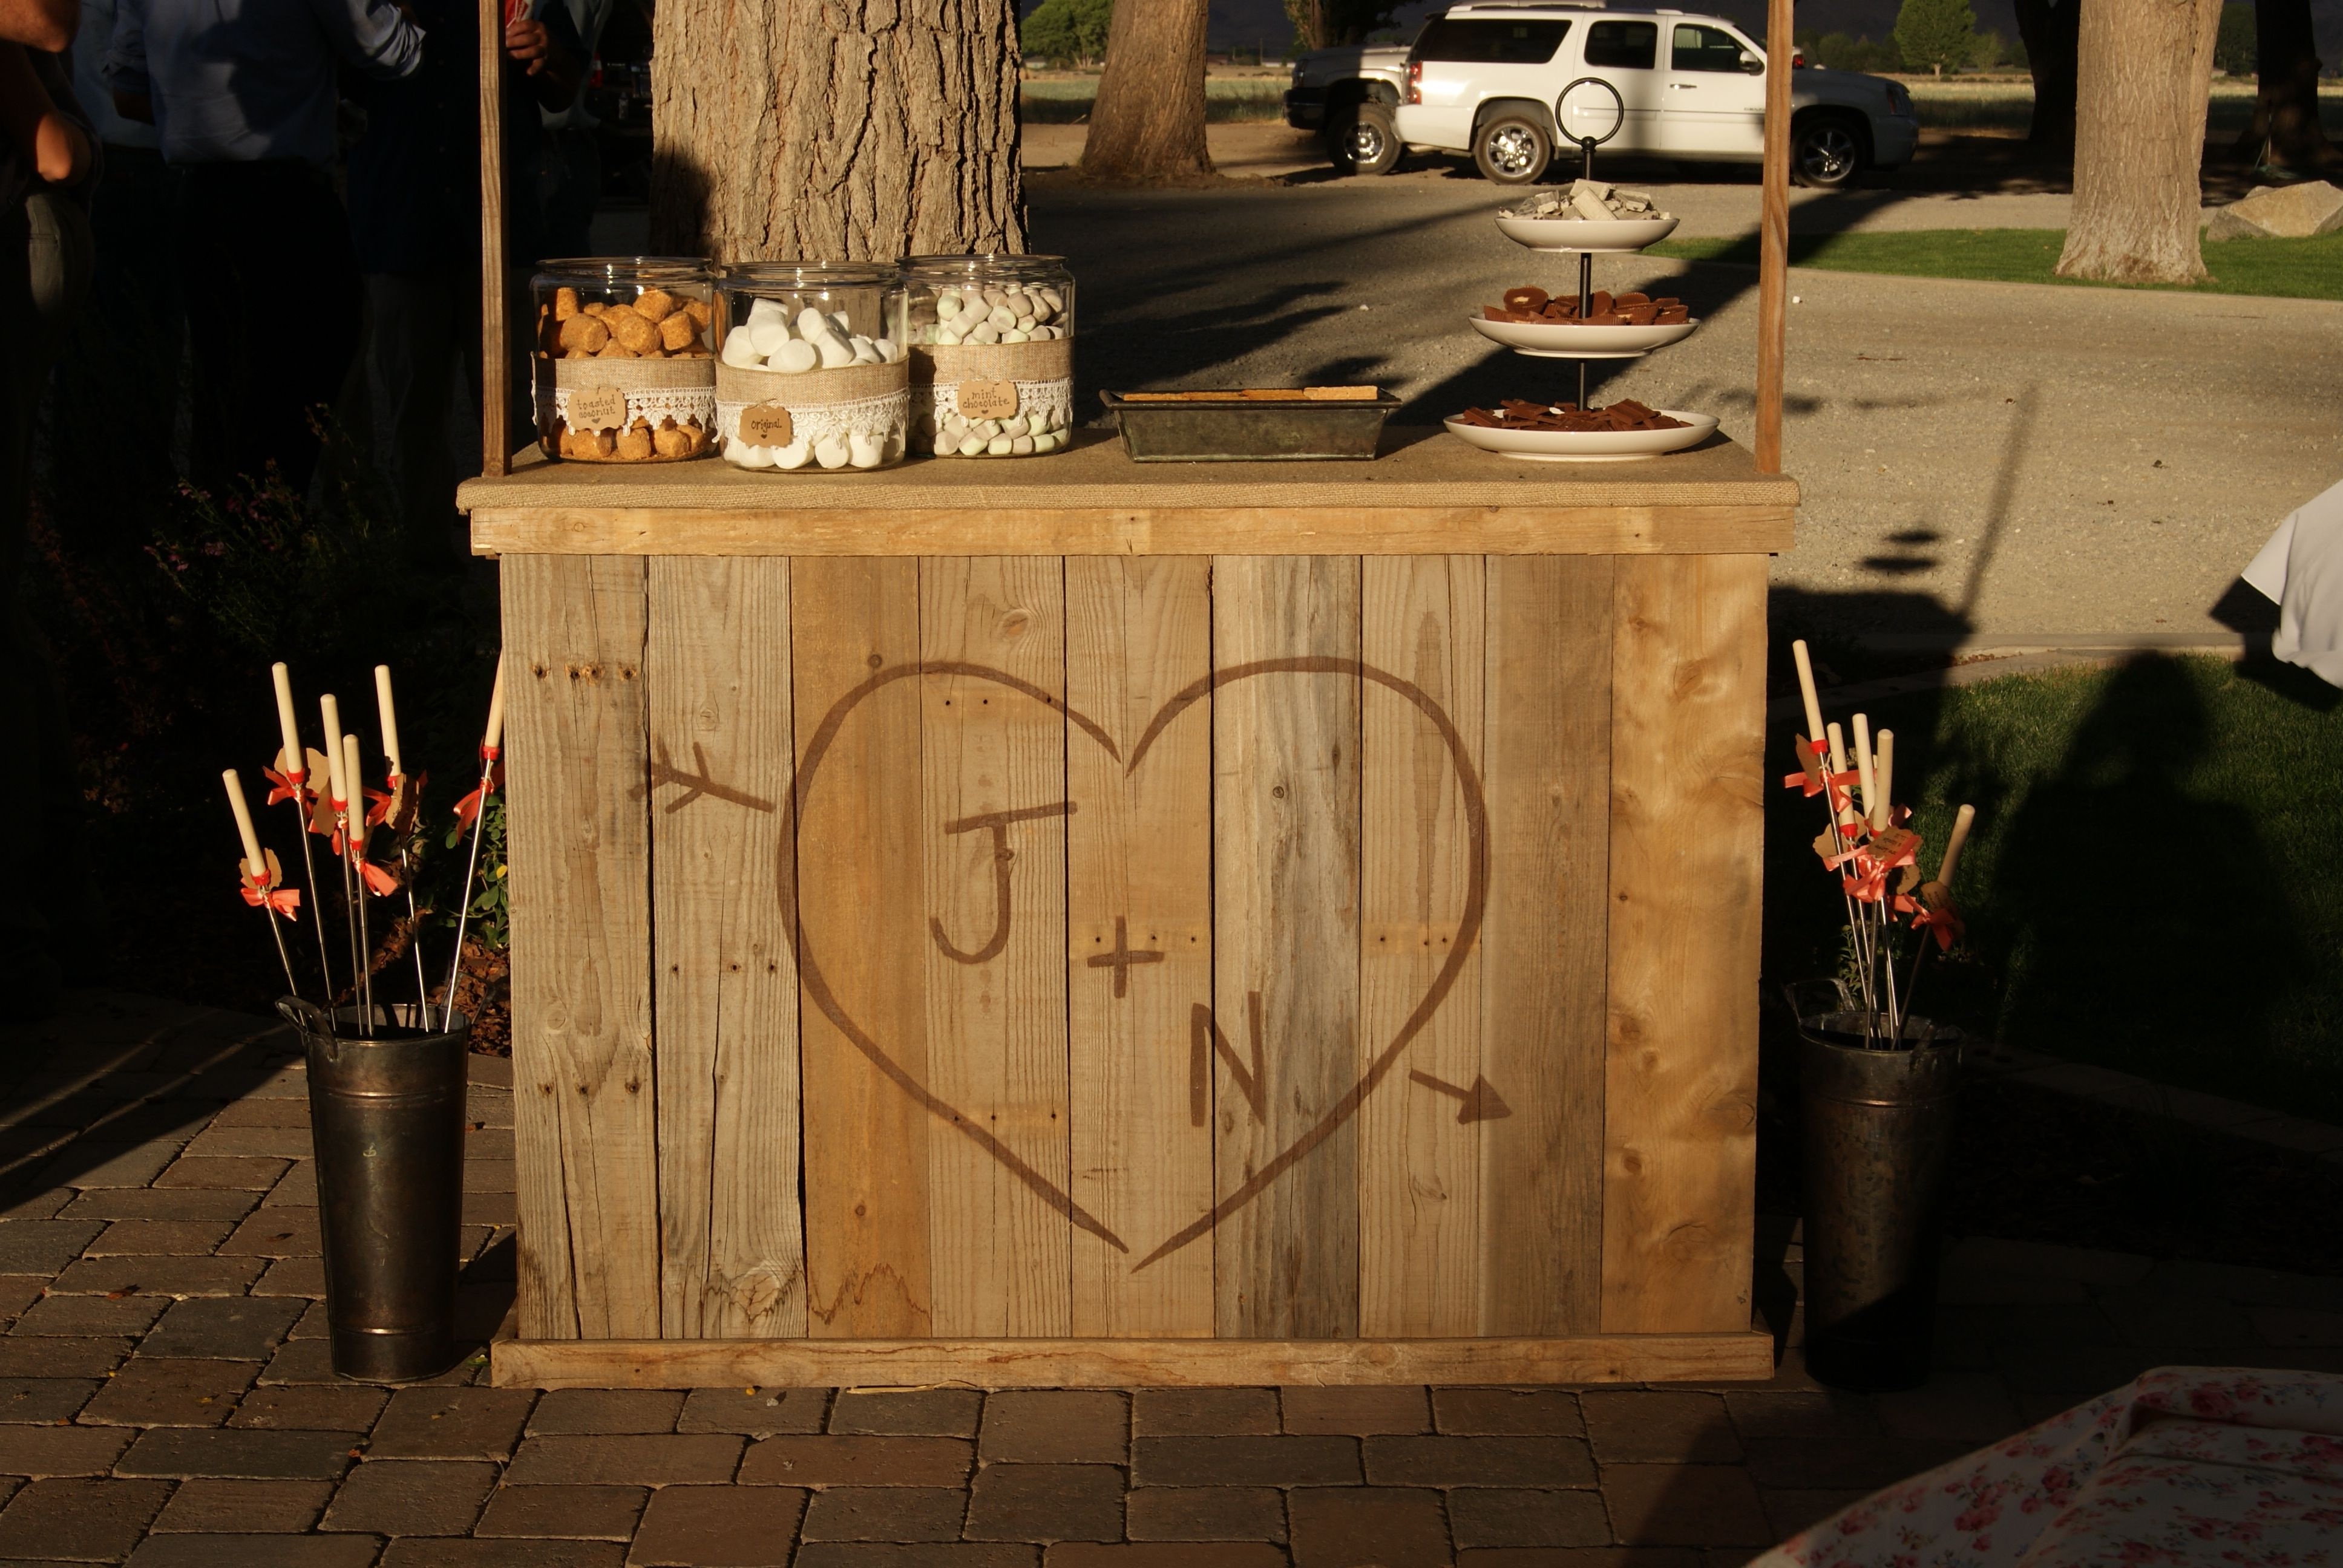 Wedding Smores Bar My Husband Built From Old Pallets